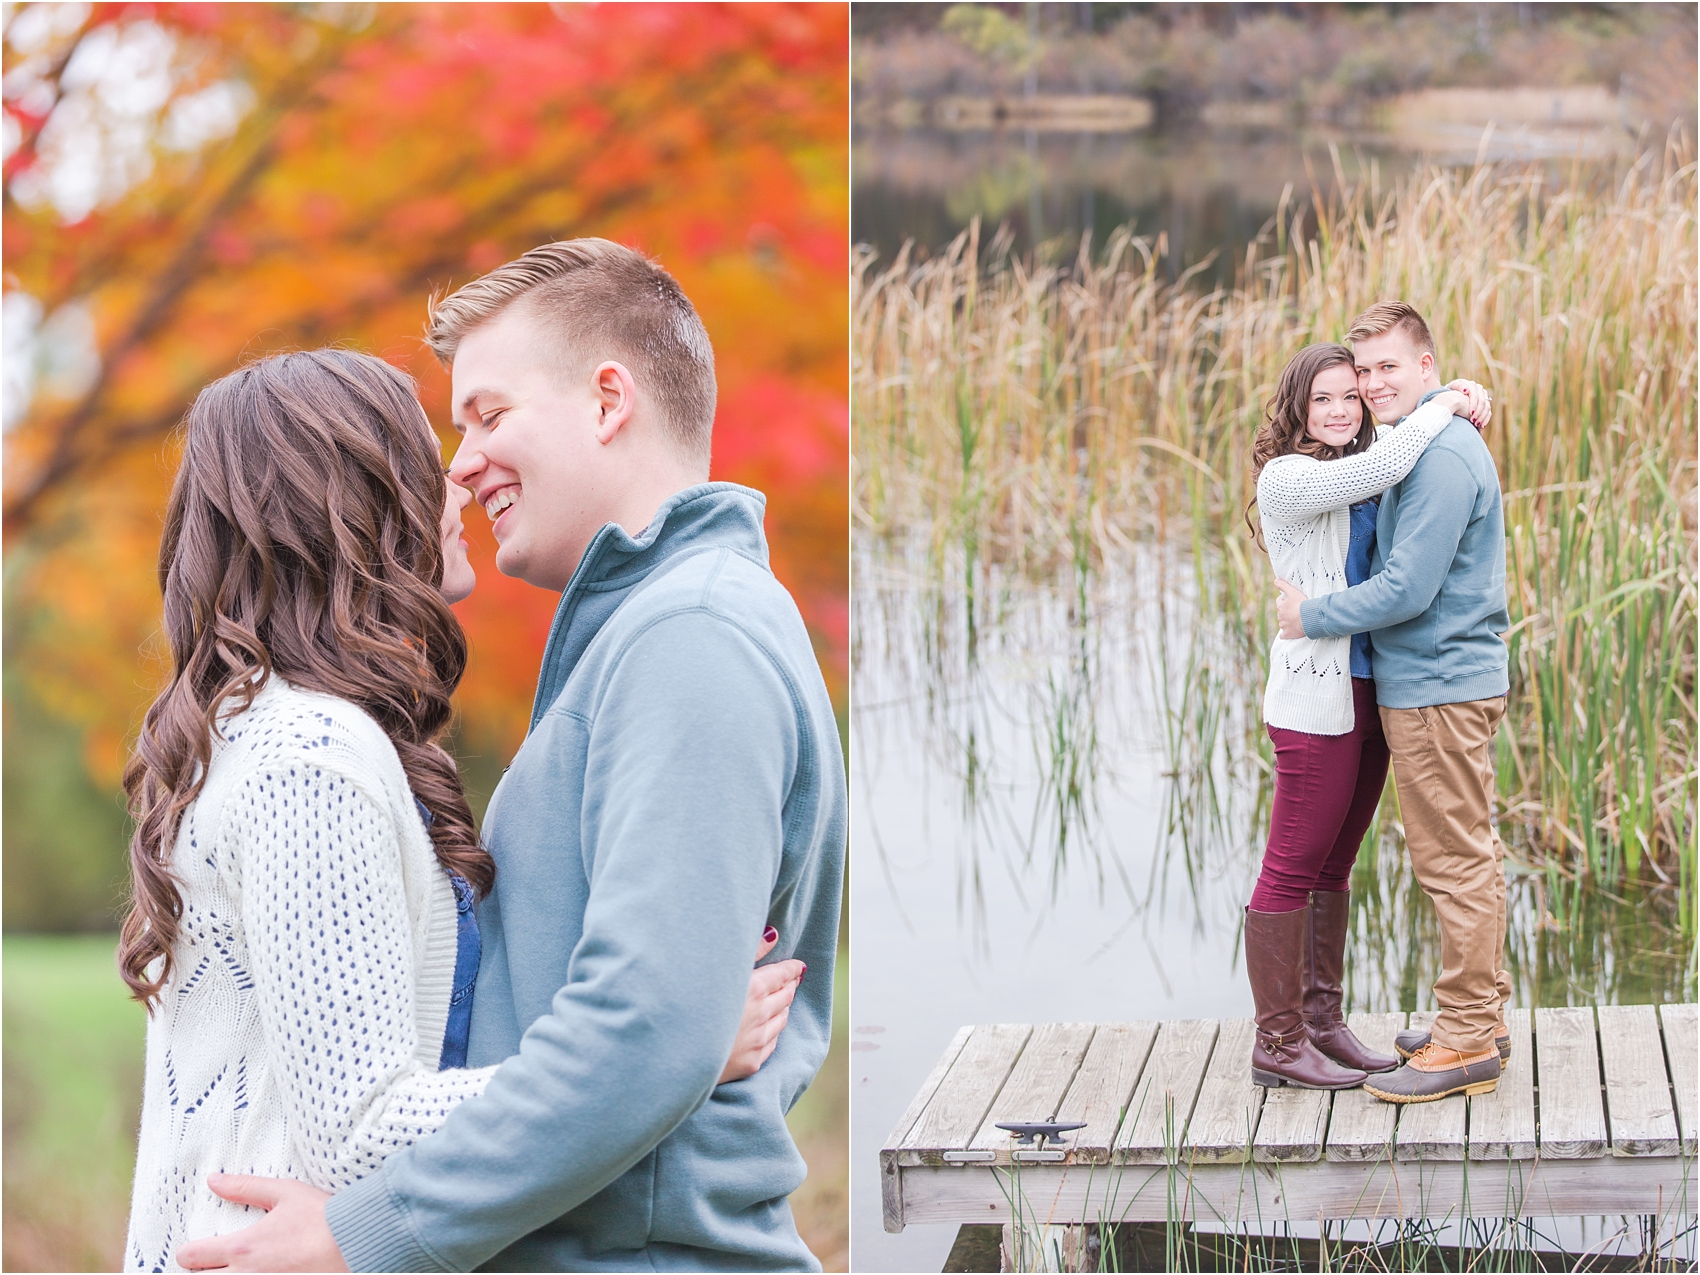 colorful-fall-engagement-photos-at-the-lake-at-huron-meadows-metropark-in-brighton-michigan-by-courtney-carolyn-photography_0020.jpg